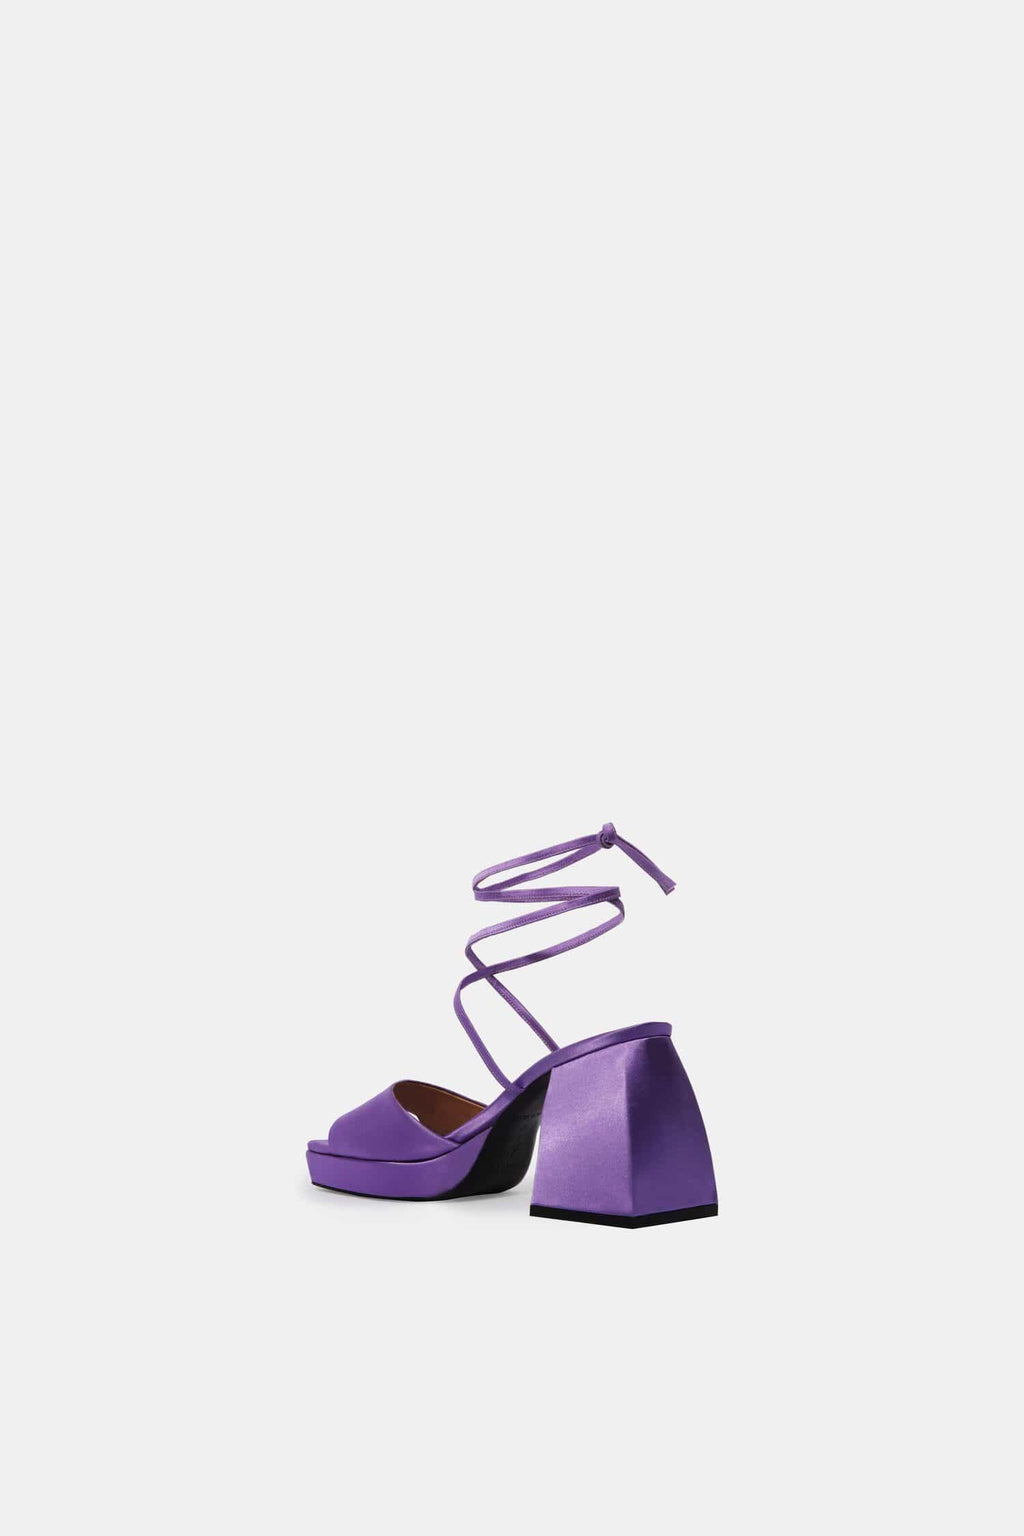 Nodaleto Bulla Marshall Dusty Lavender I TownHouse Work/Shop